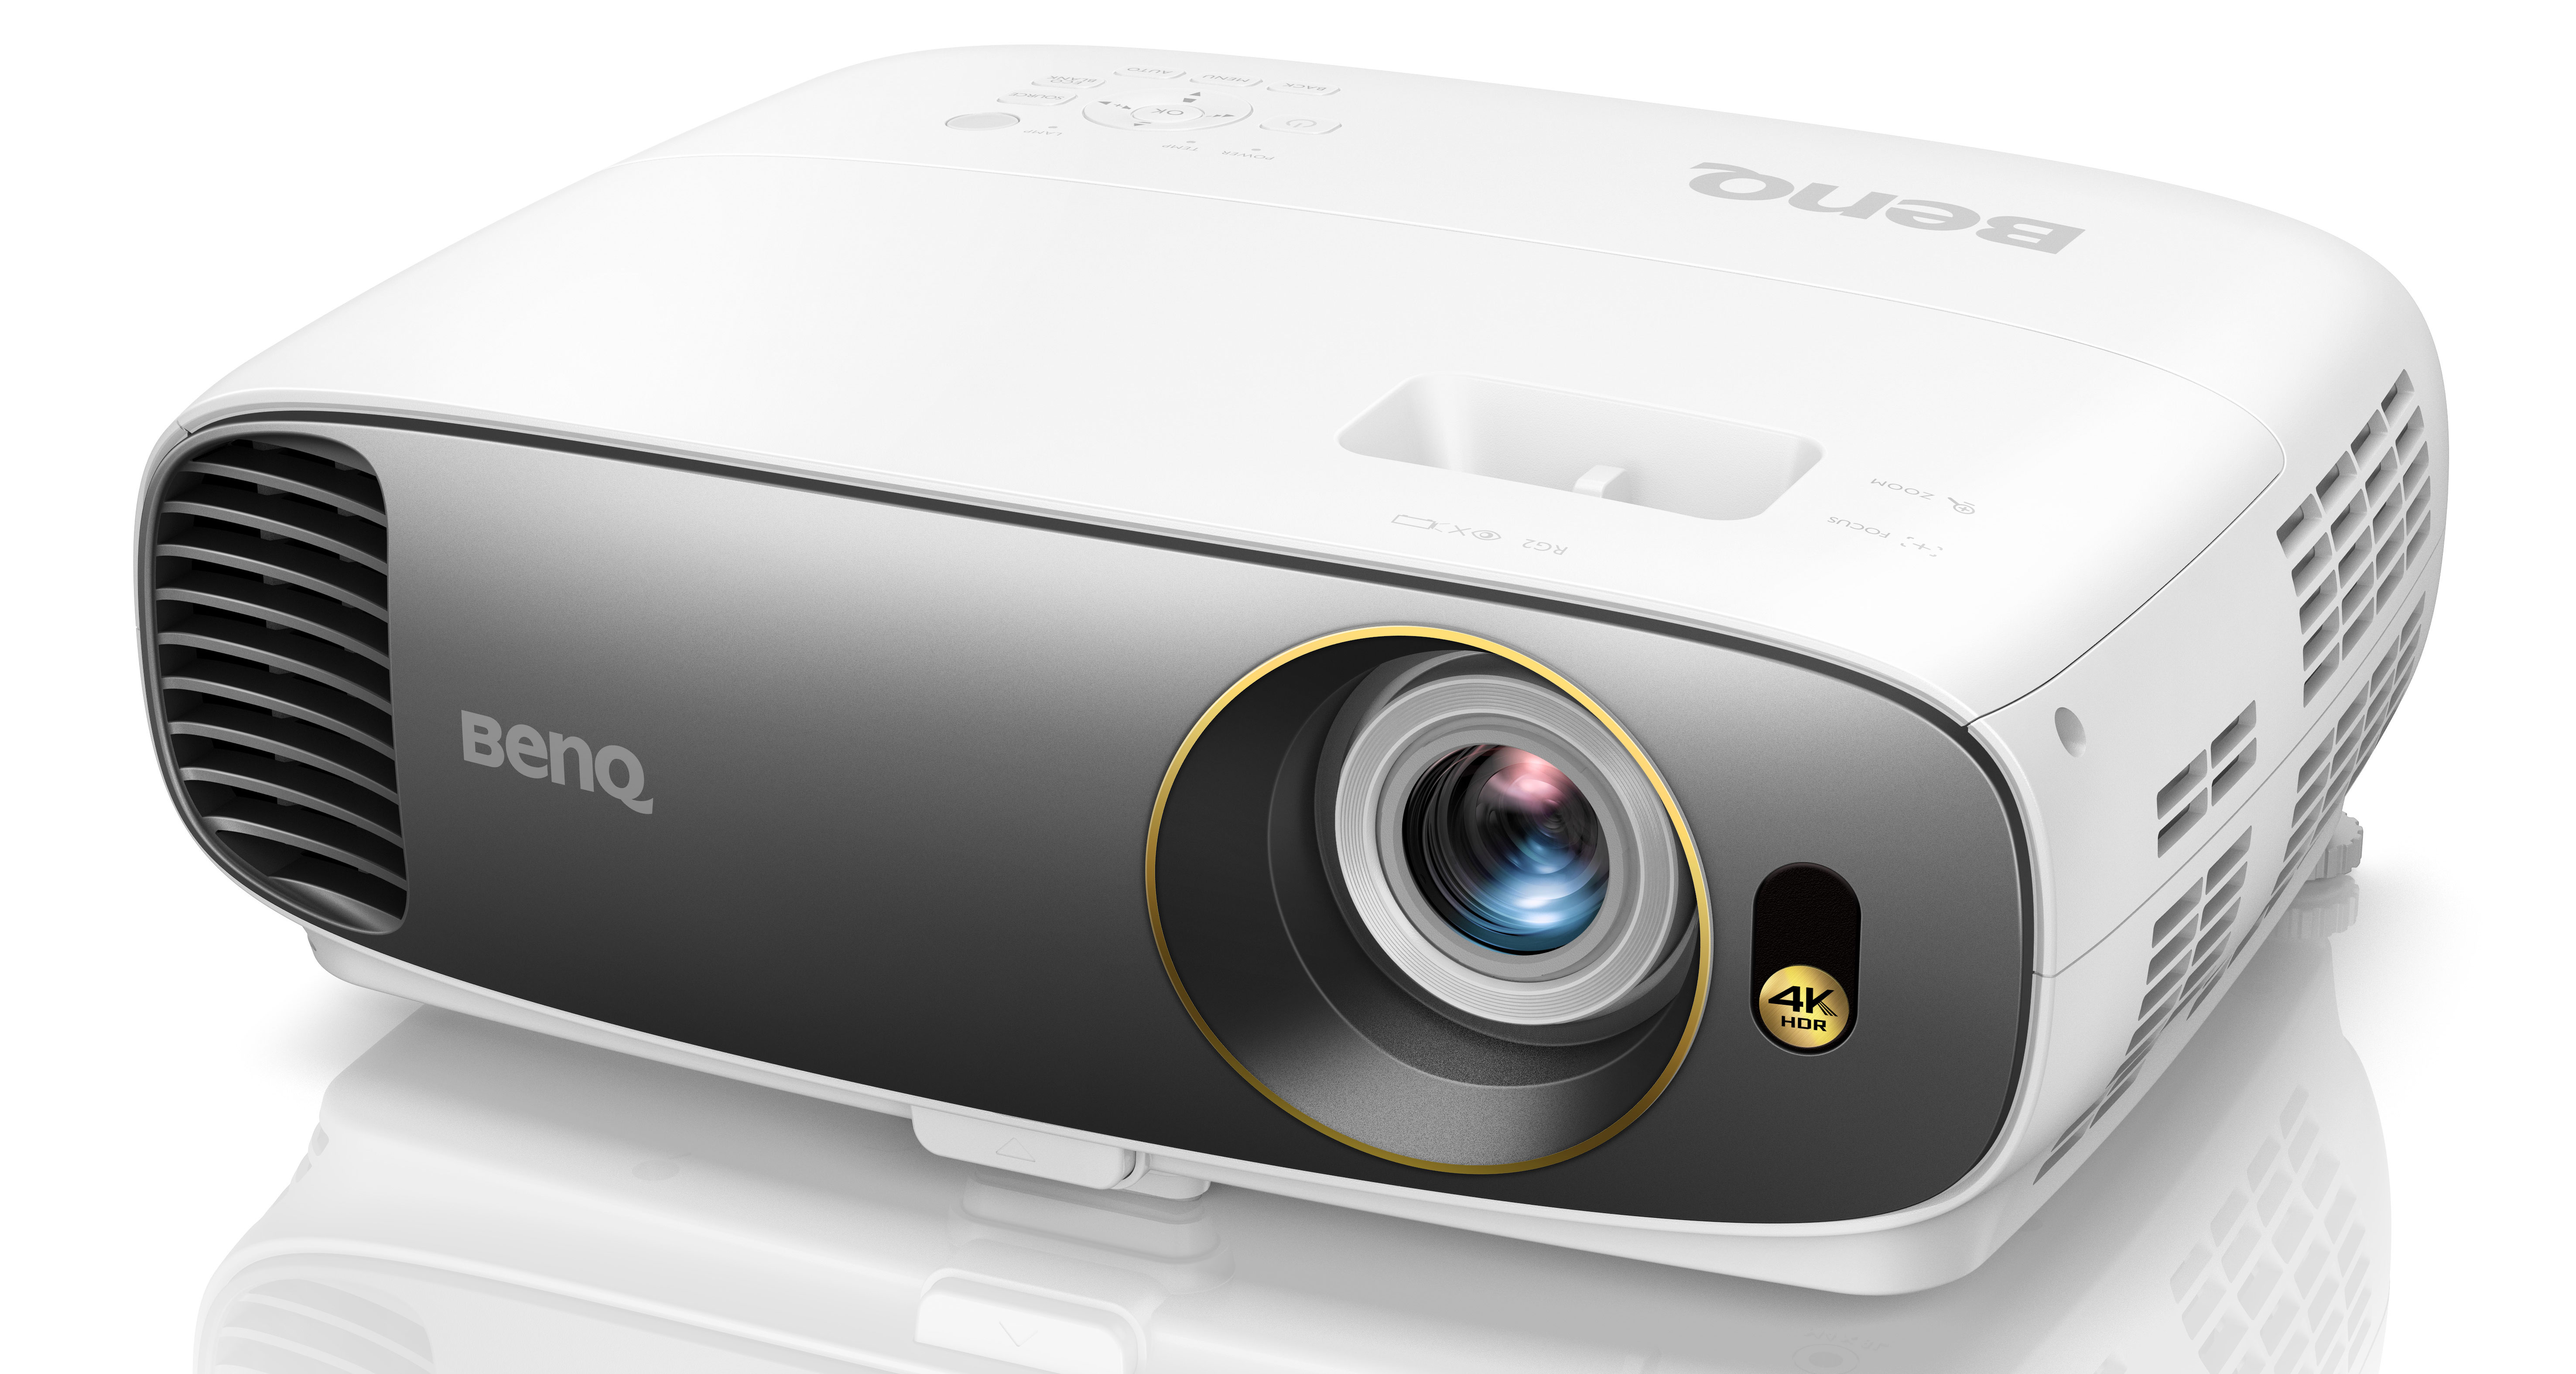 BenQ Intros Affordable CineHome HT2550 Projector